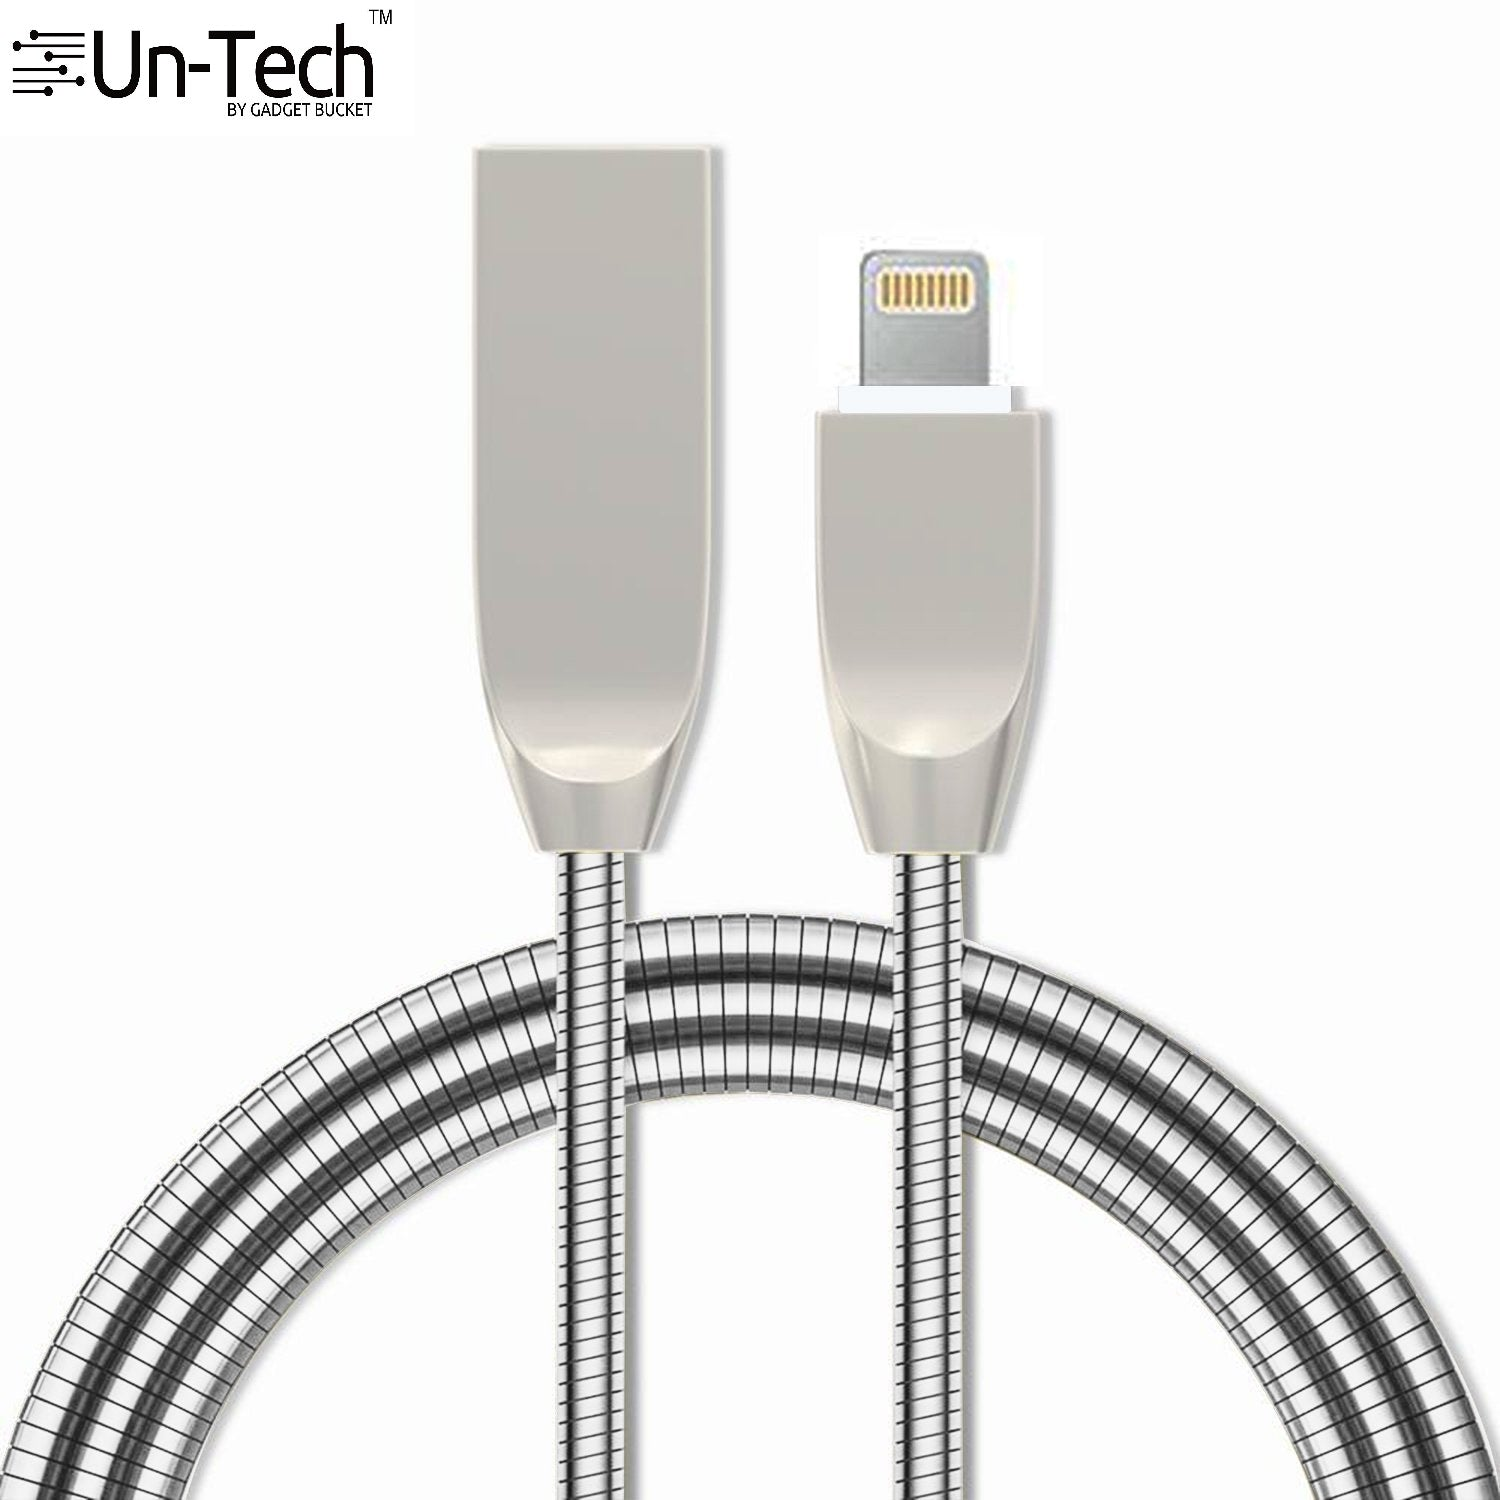 UnTech Metal Spring Shade (3.3ft/1M) 8 Pin to USB Fast Charging and Data Transfer Cord (Silver) - gadgetbucketindia